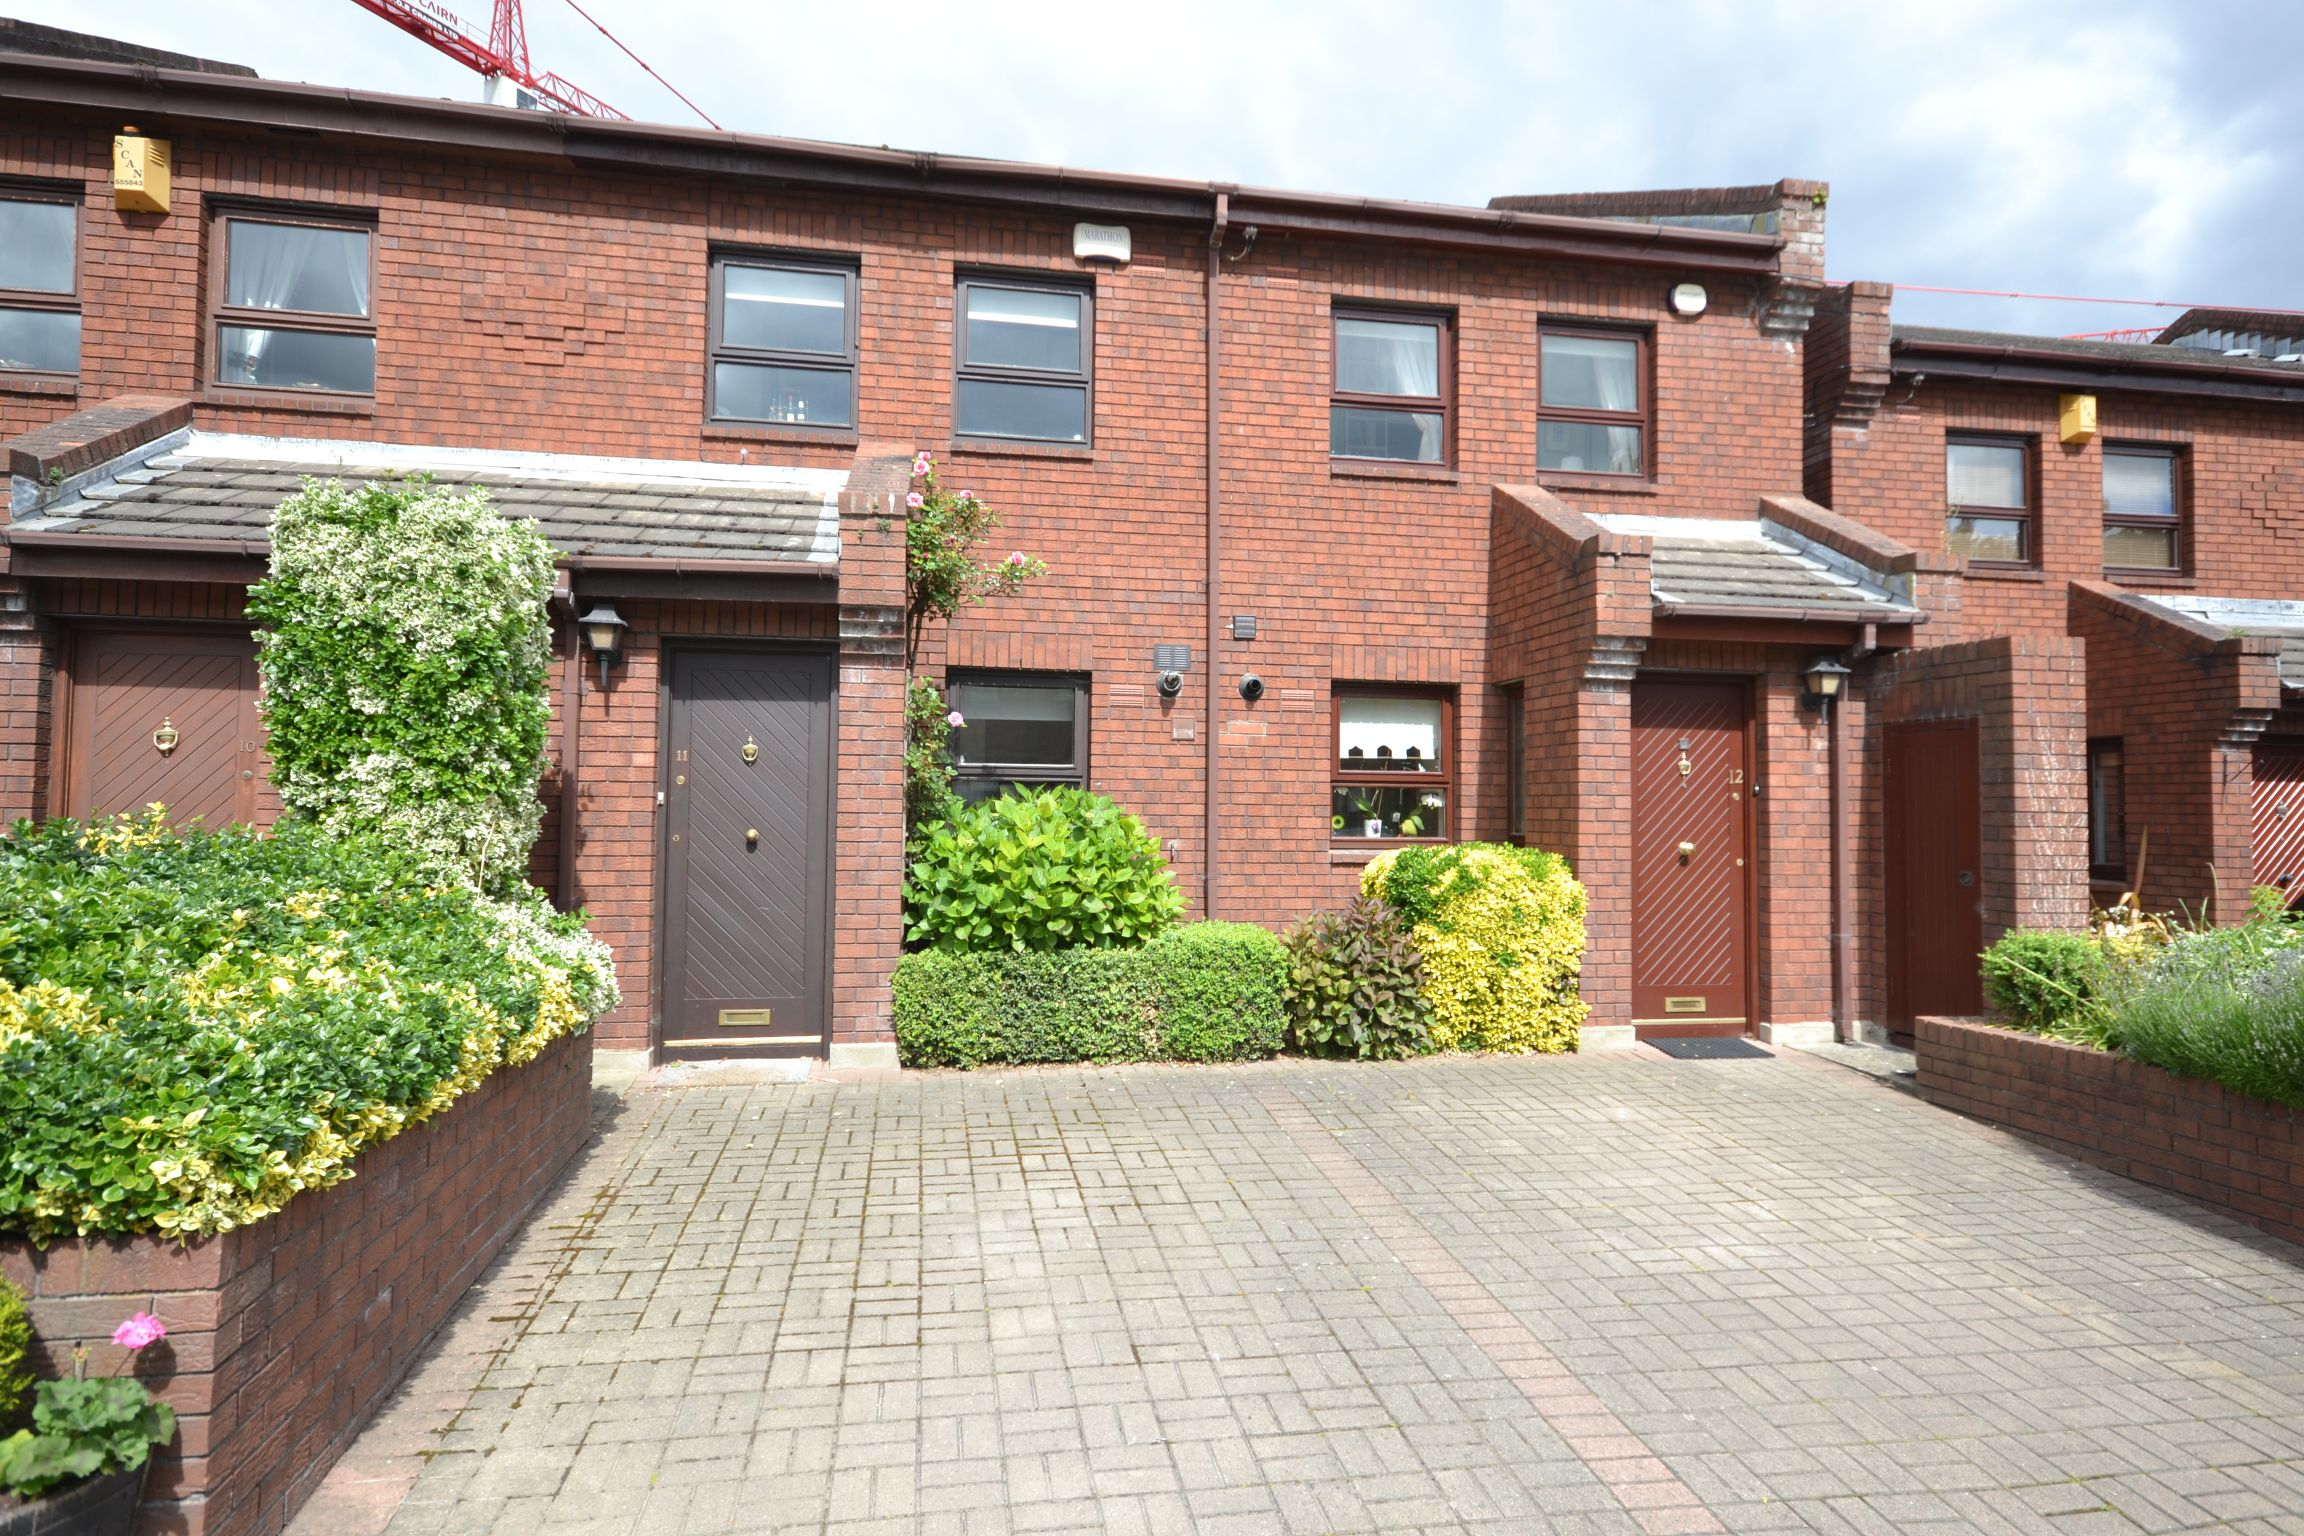 Nutley Square, Greenfield Road, Donnybrook, Dublin 4